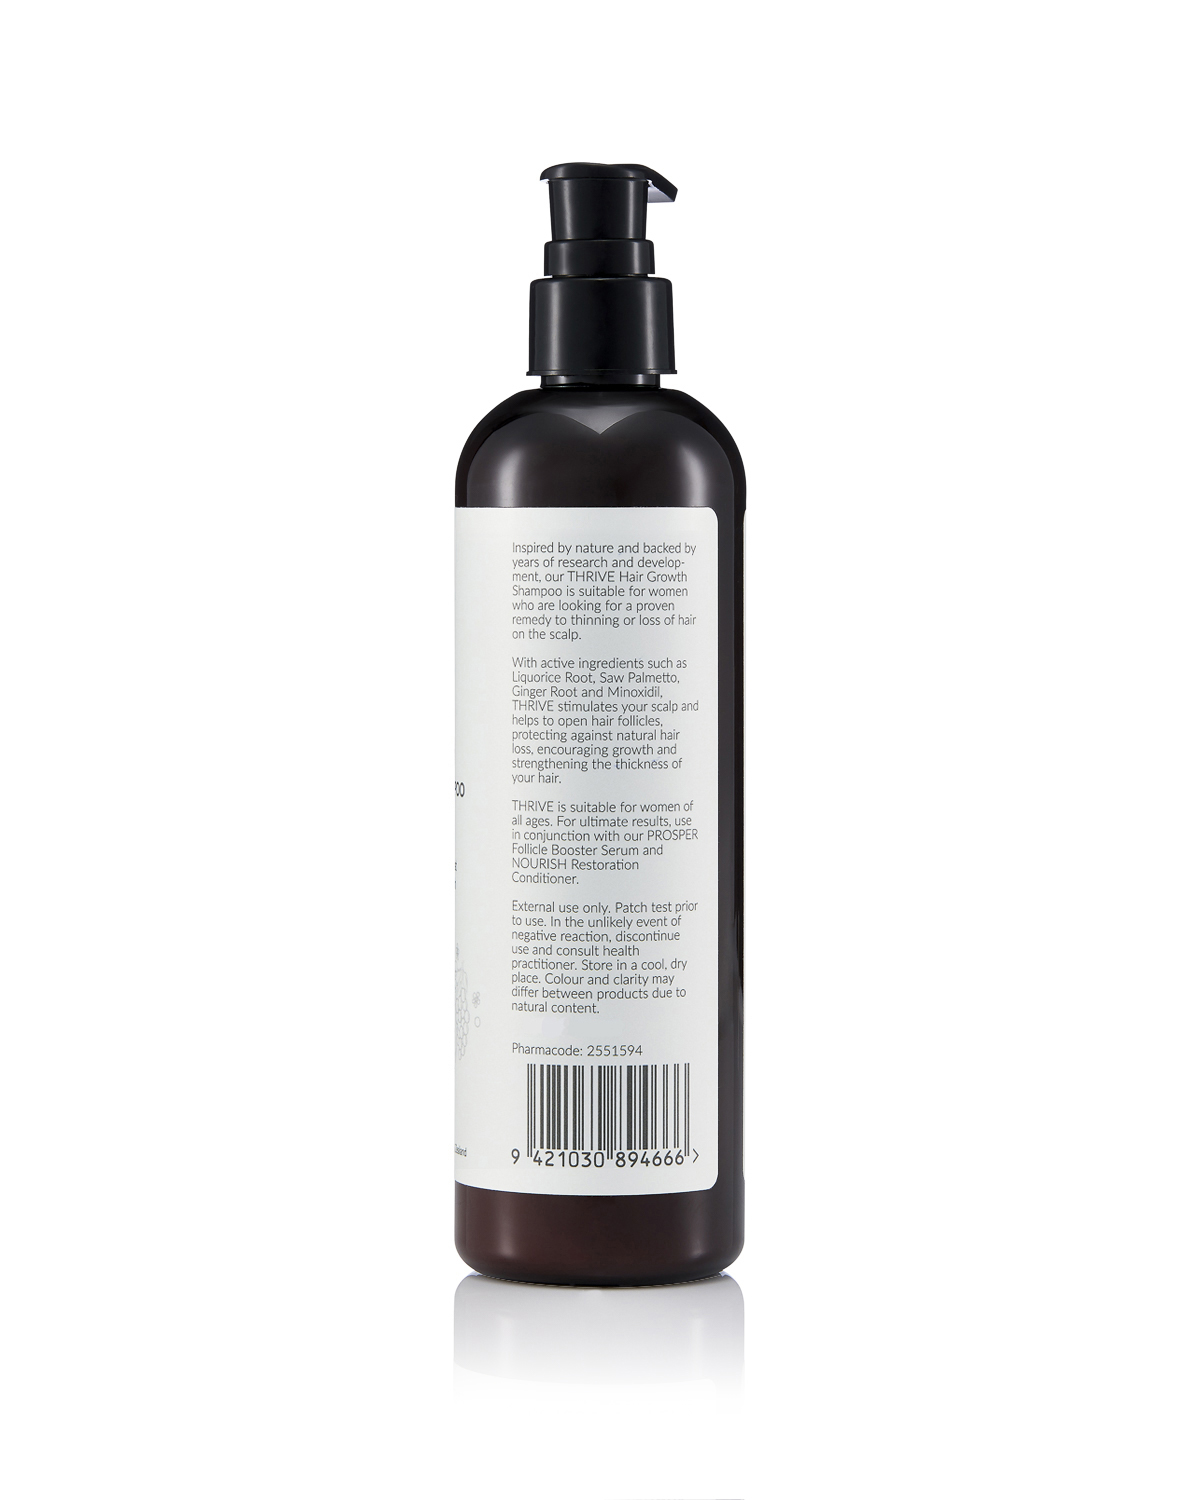 THRIVE HAIR GROWTH SHAMPOO FOR WOMEN 300ML